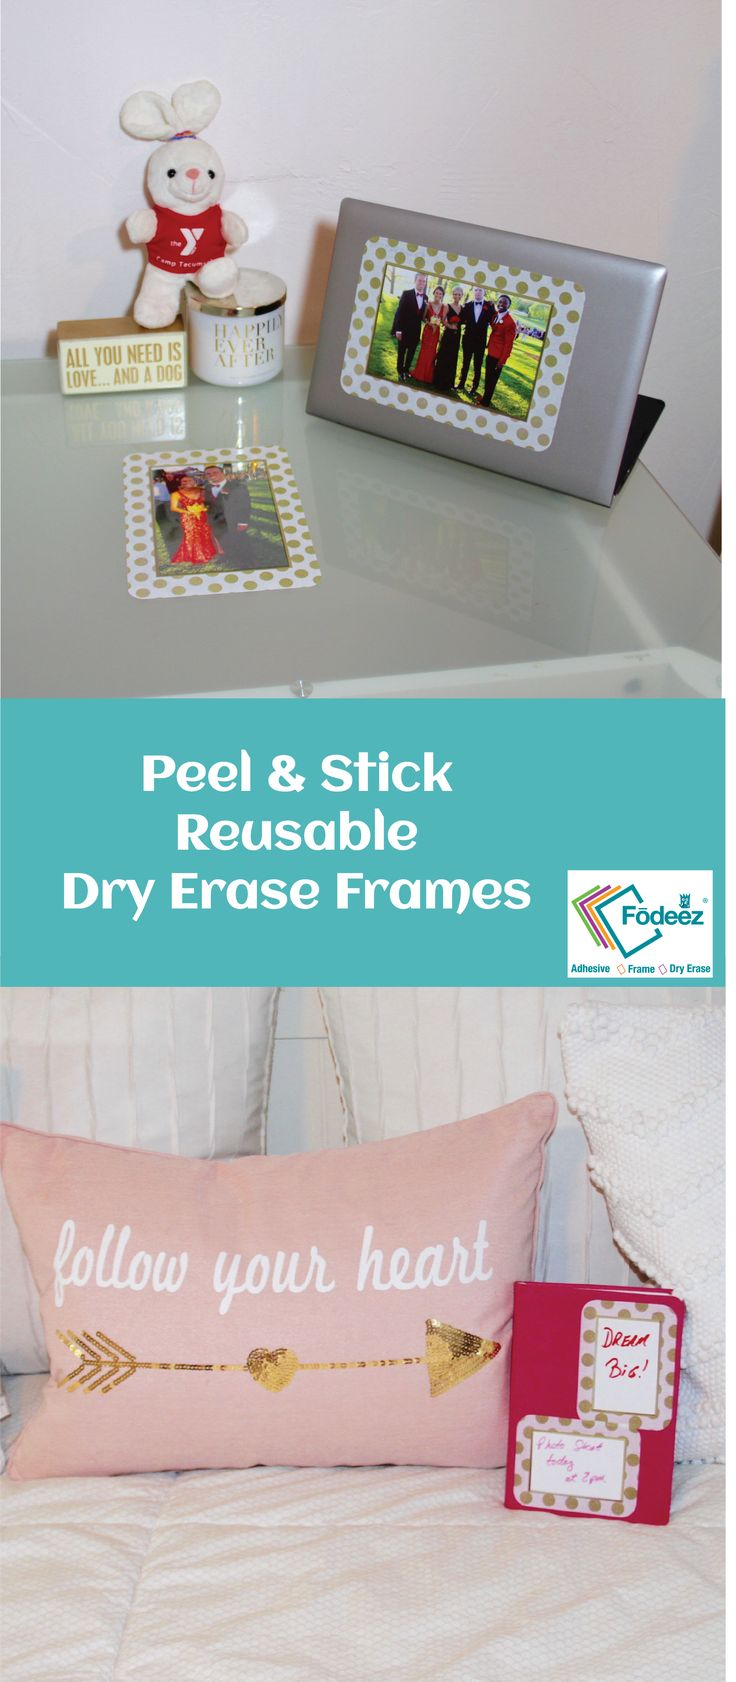 High Style Dorm Room Decorating These Self Stick Frames Work On All SMOOTH  Surfaces And Part 49